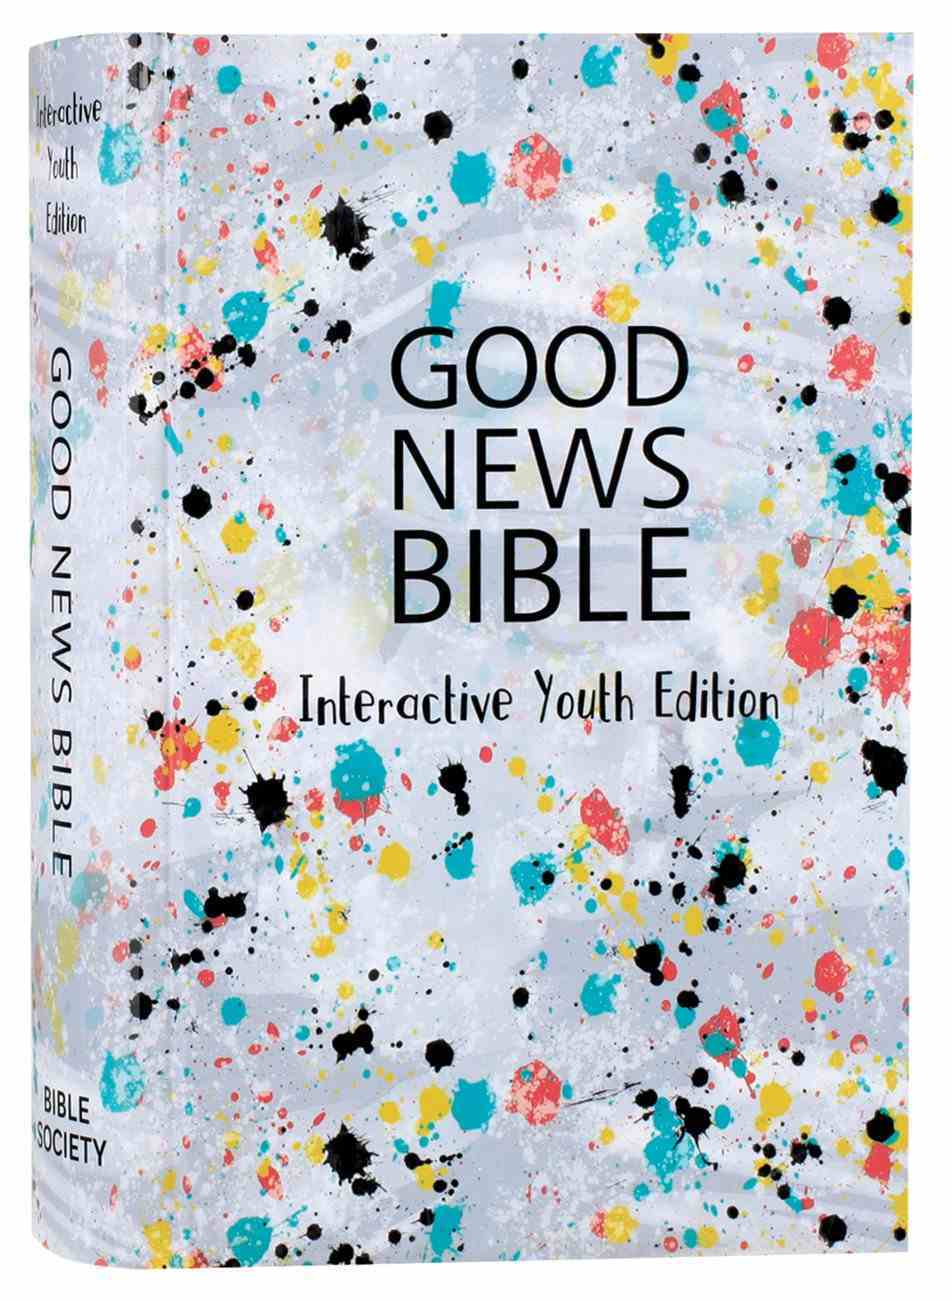 GNB Good News Bible Interactive Youth Edition (Anglicised) Hardback